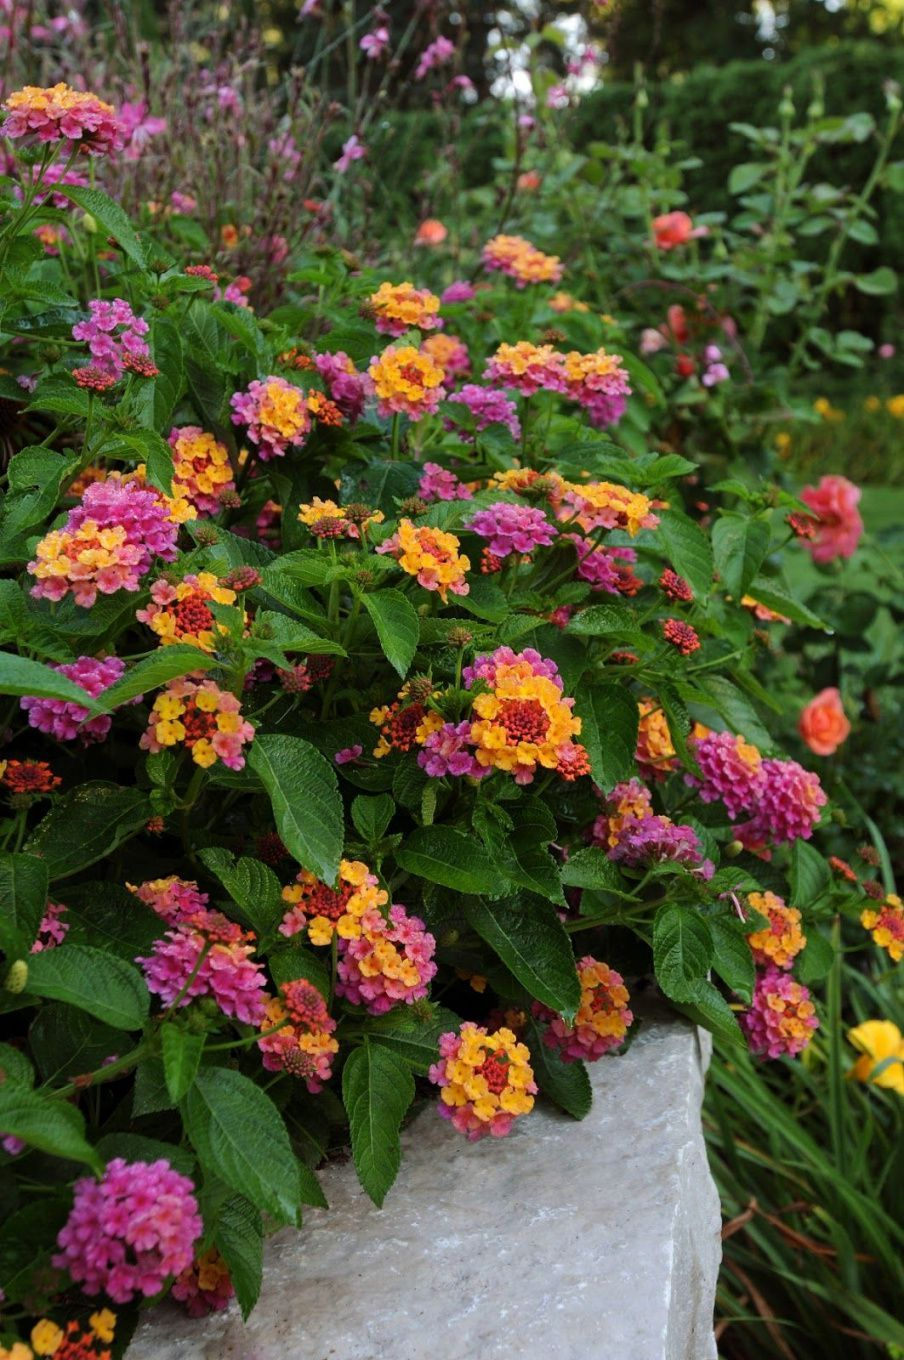 The 10 Best Lantana Landscaping In 2020 Heat Tolerant Plants Plants Drought Tolerant Garden